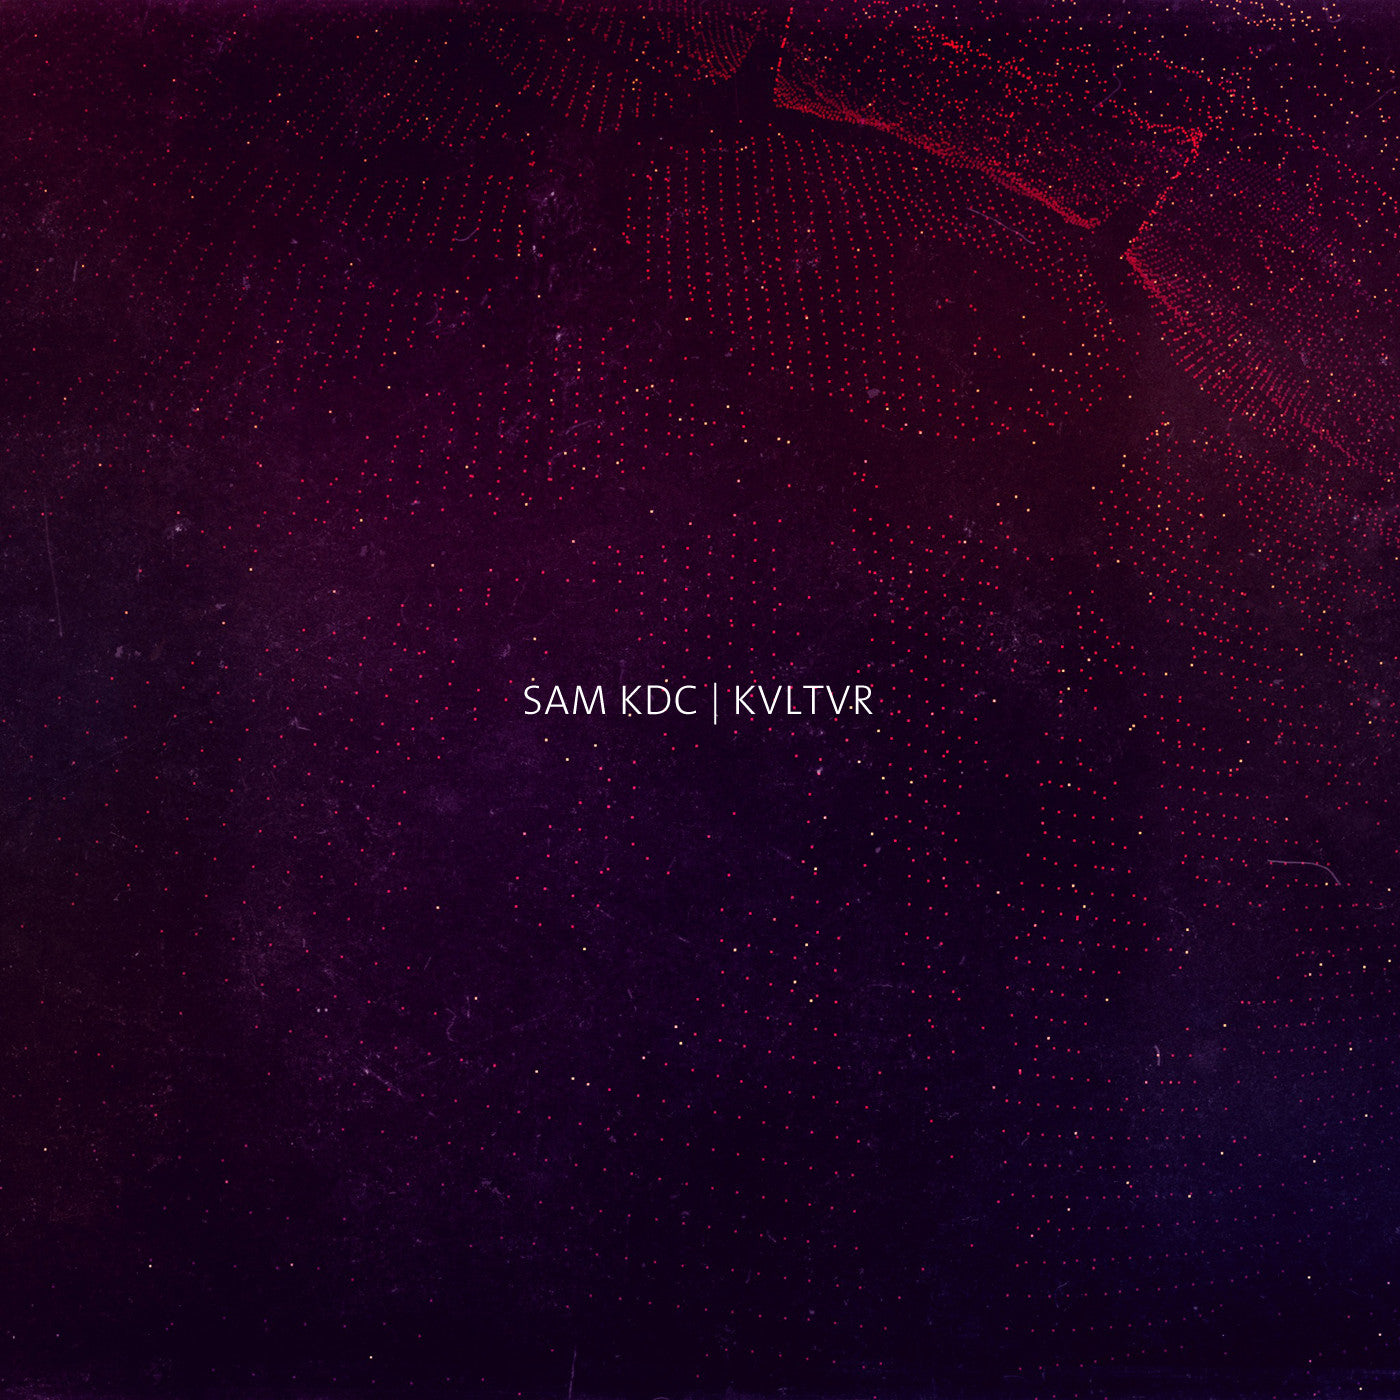 Sam KDC - KVLTVR (Downloads)